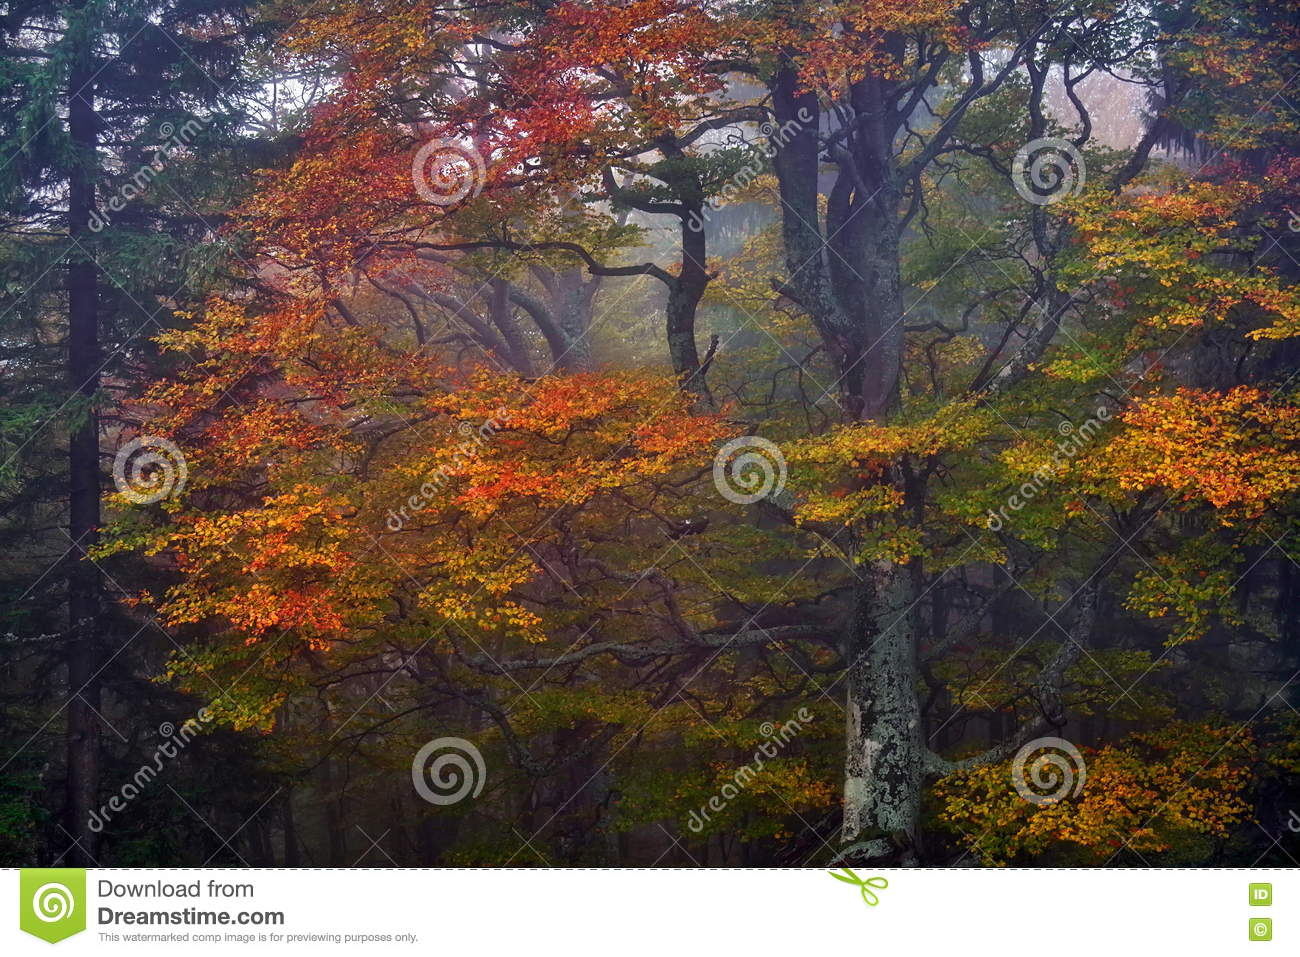 Autumn landscape. Forest and autumn. Fall colors in a tree, in the evening